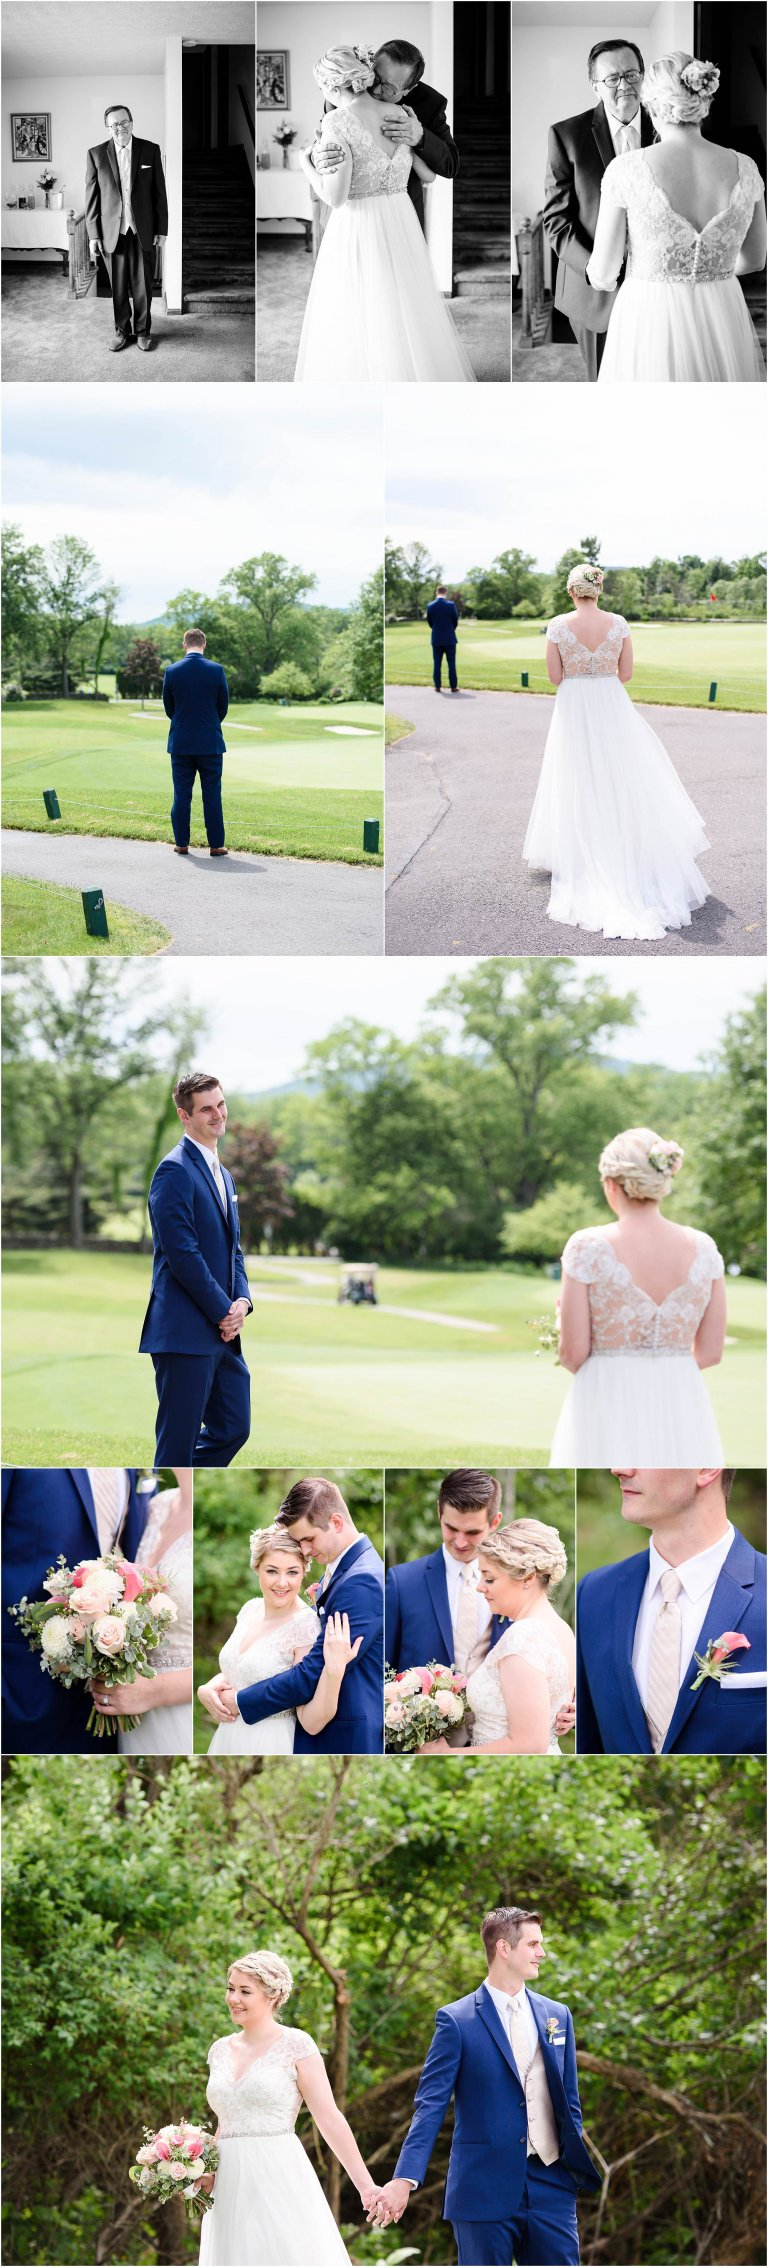 Clarks Summit PA wedding photographer Crystal Satriano captures the bride and groom seeing eachother for the first time.